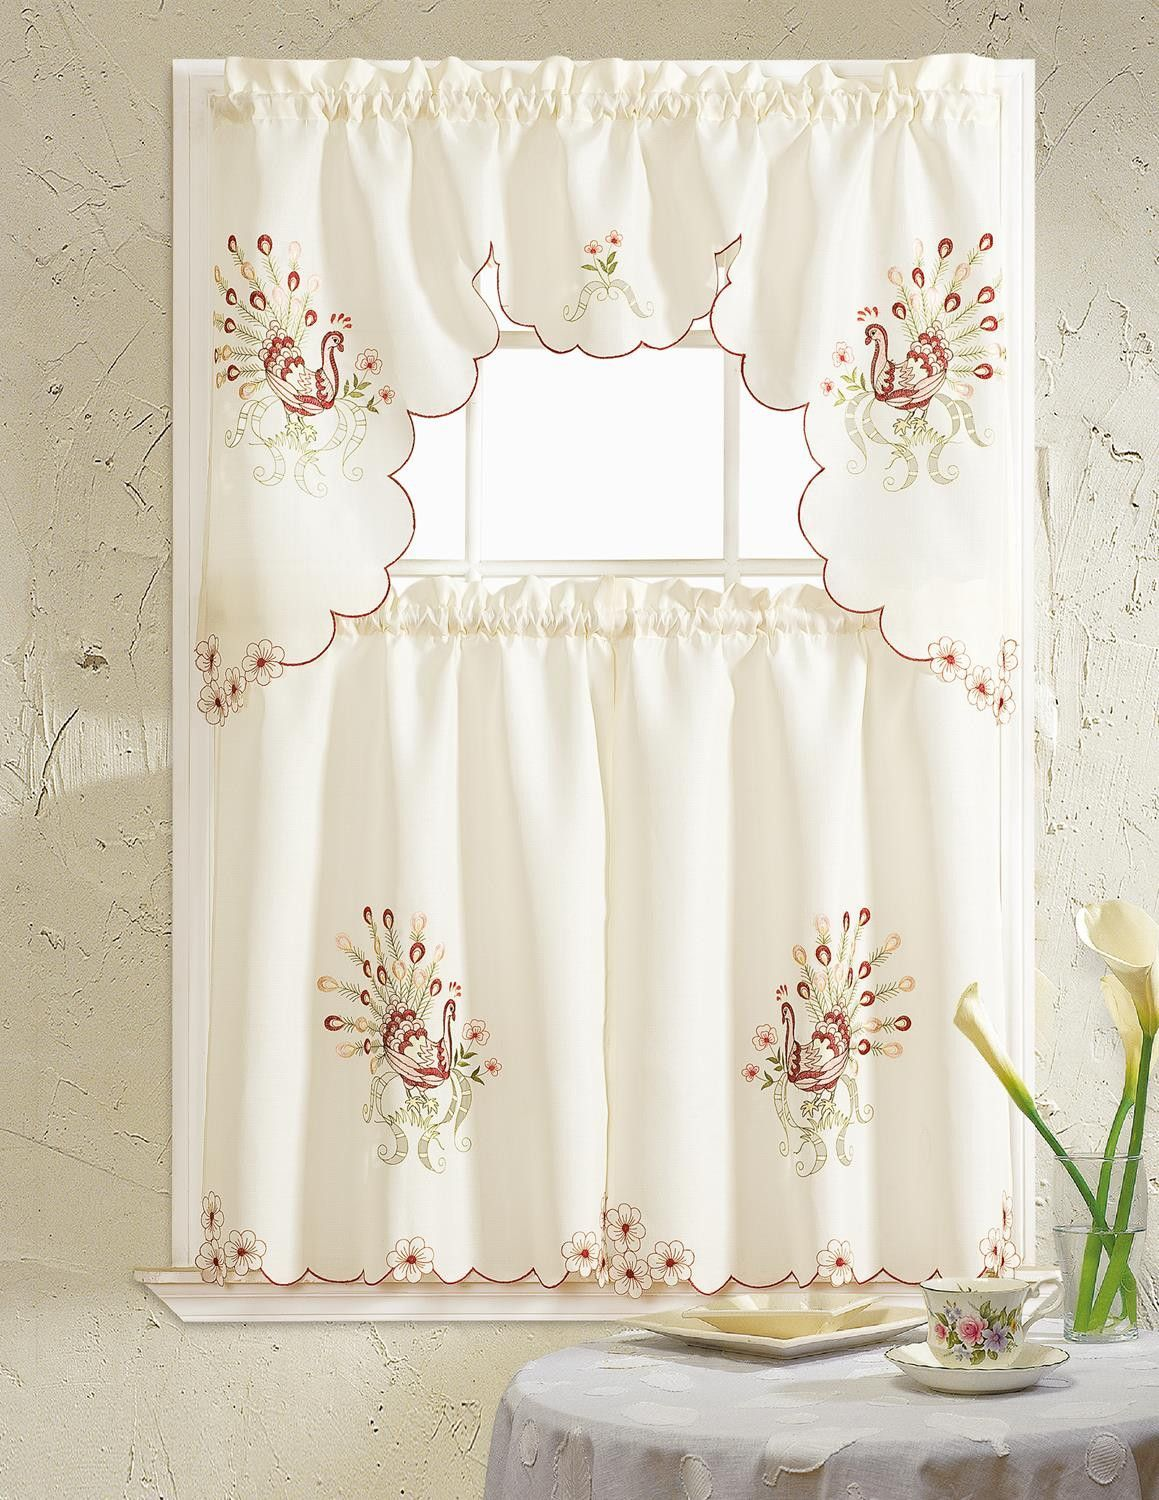 Peacock Embroidered Ruffle Kitchen Curtain Set Swag